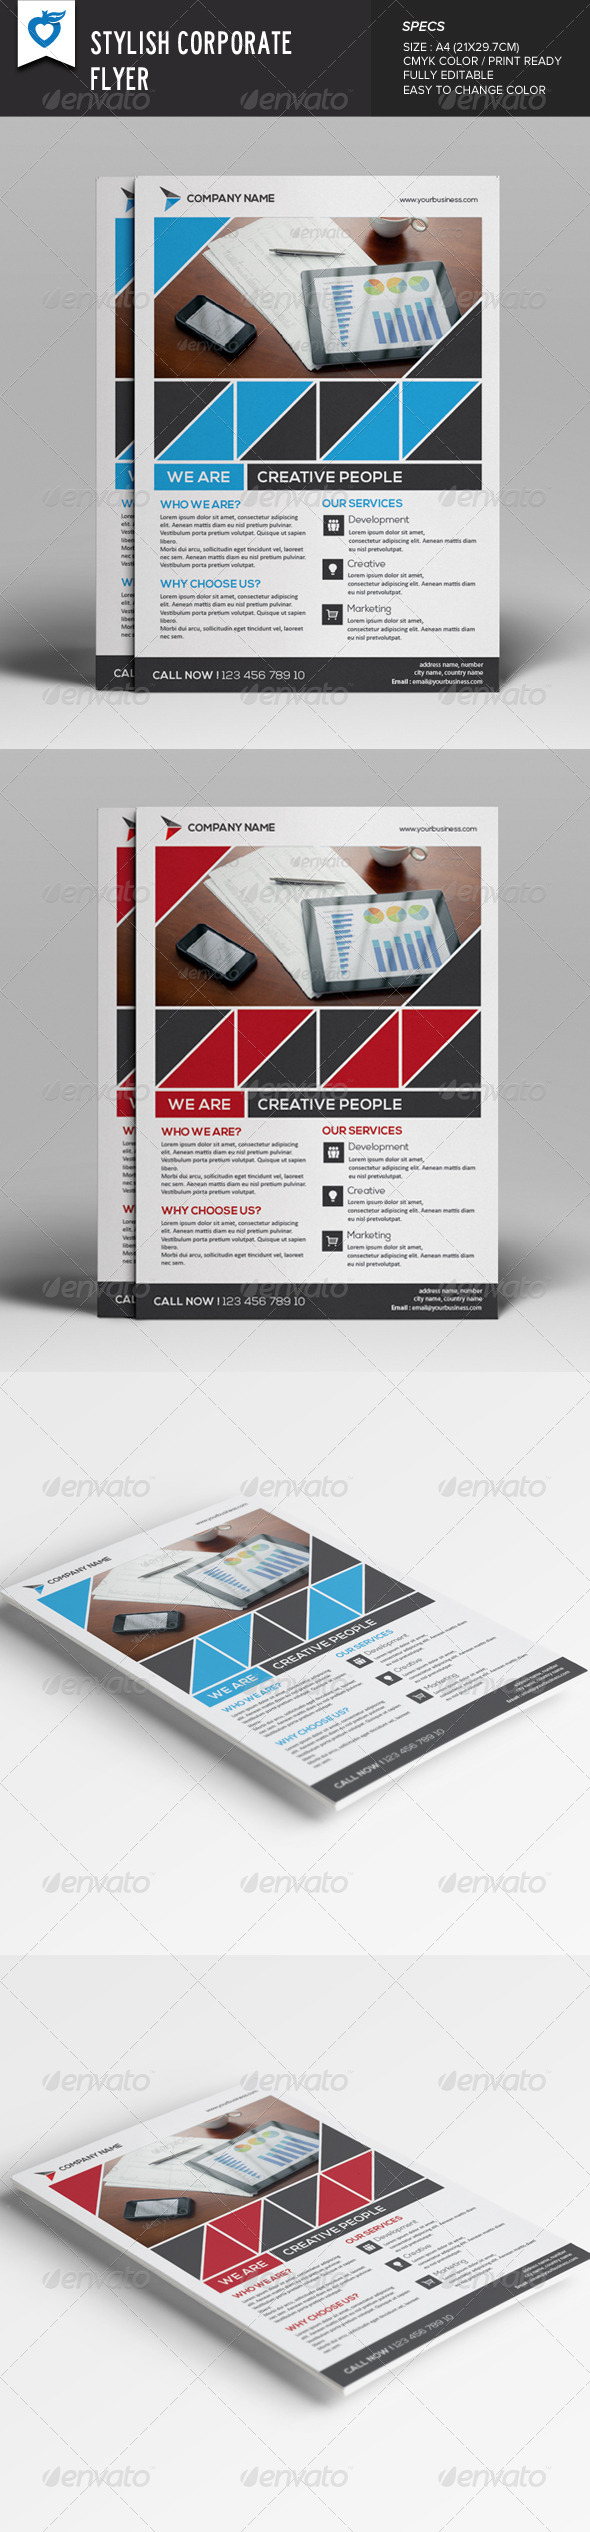 GraphicRiver Stylish Corporate Flyer 8023903